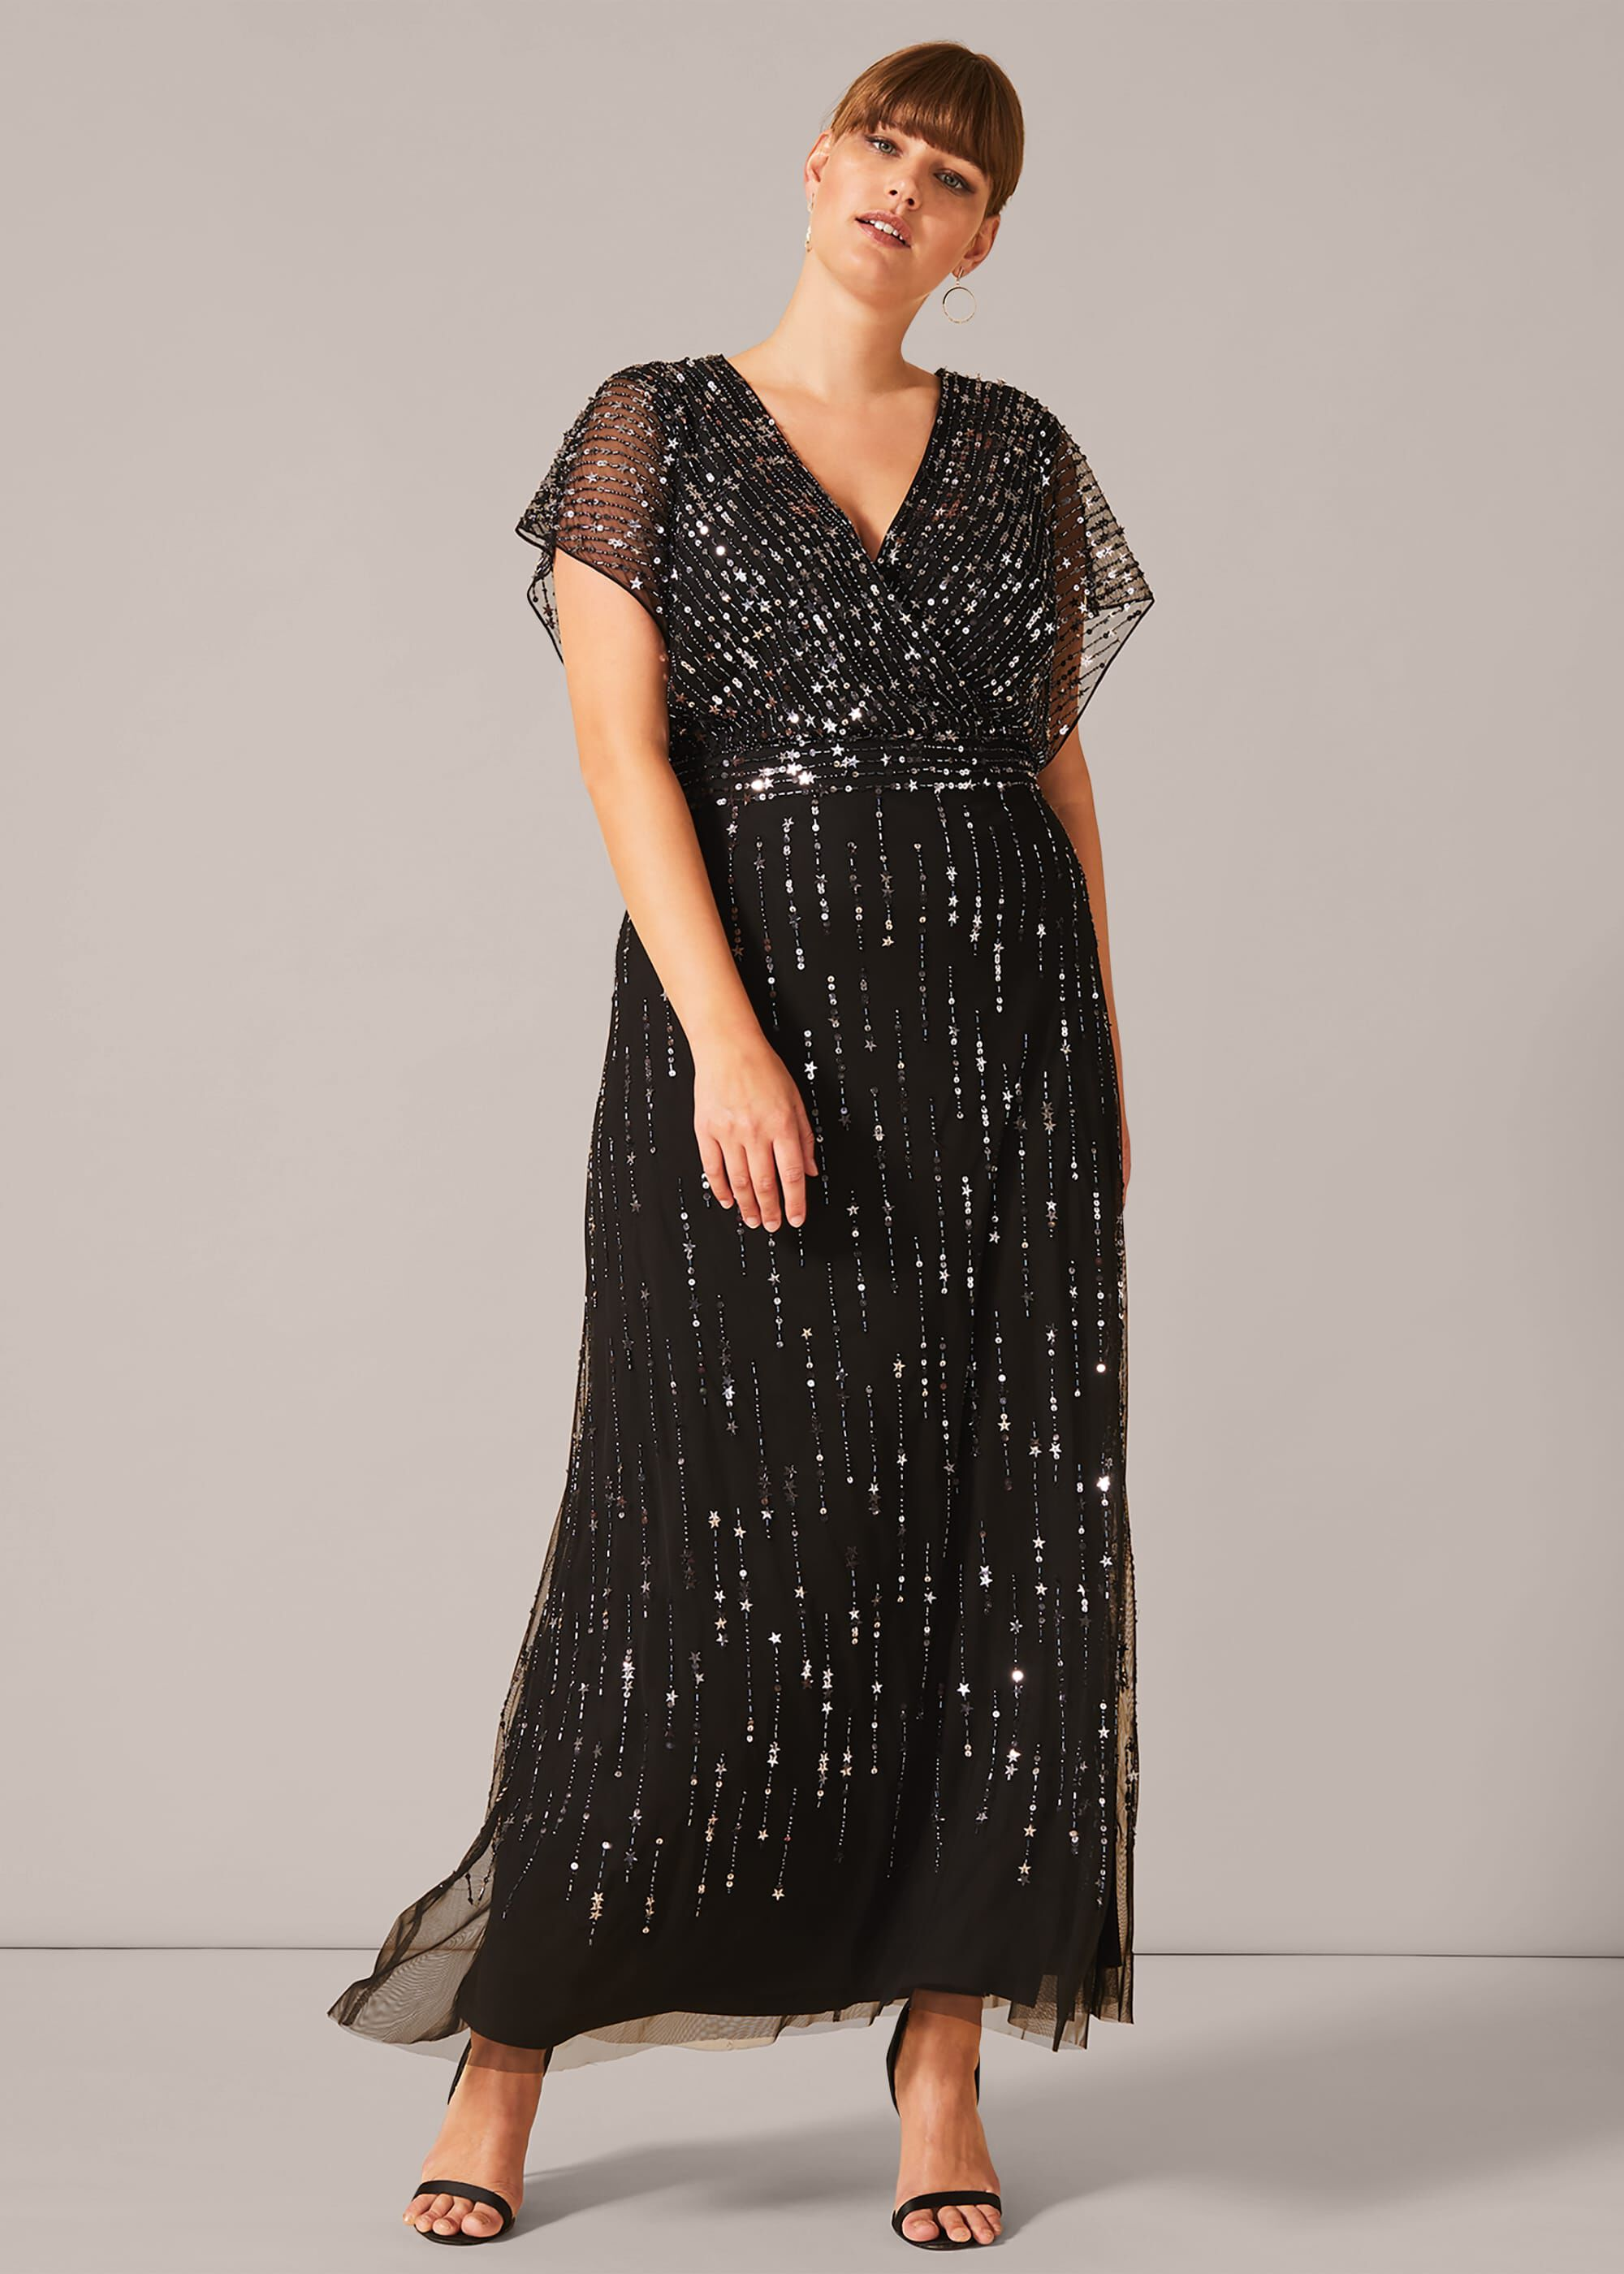 60s 70s Plus Size Dresses, Clothing, Costumes Studio 8 Shante Sequin Maxi Dress Black Maxi Occasion Dress £225.00 AT vintagedancer.com